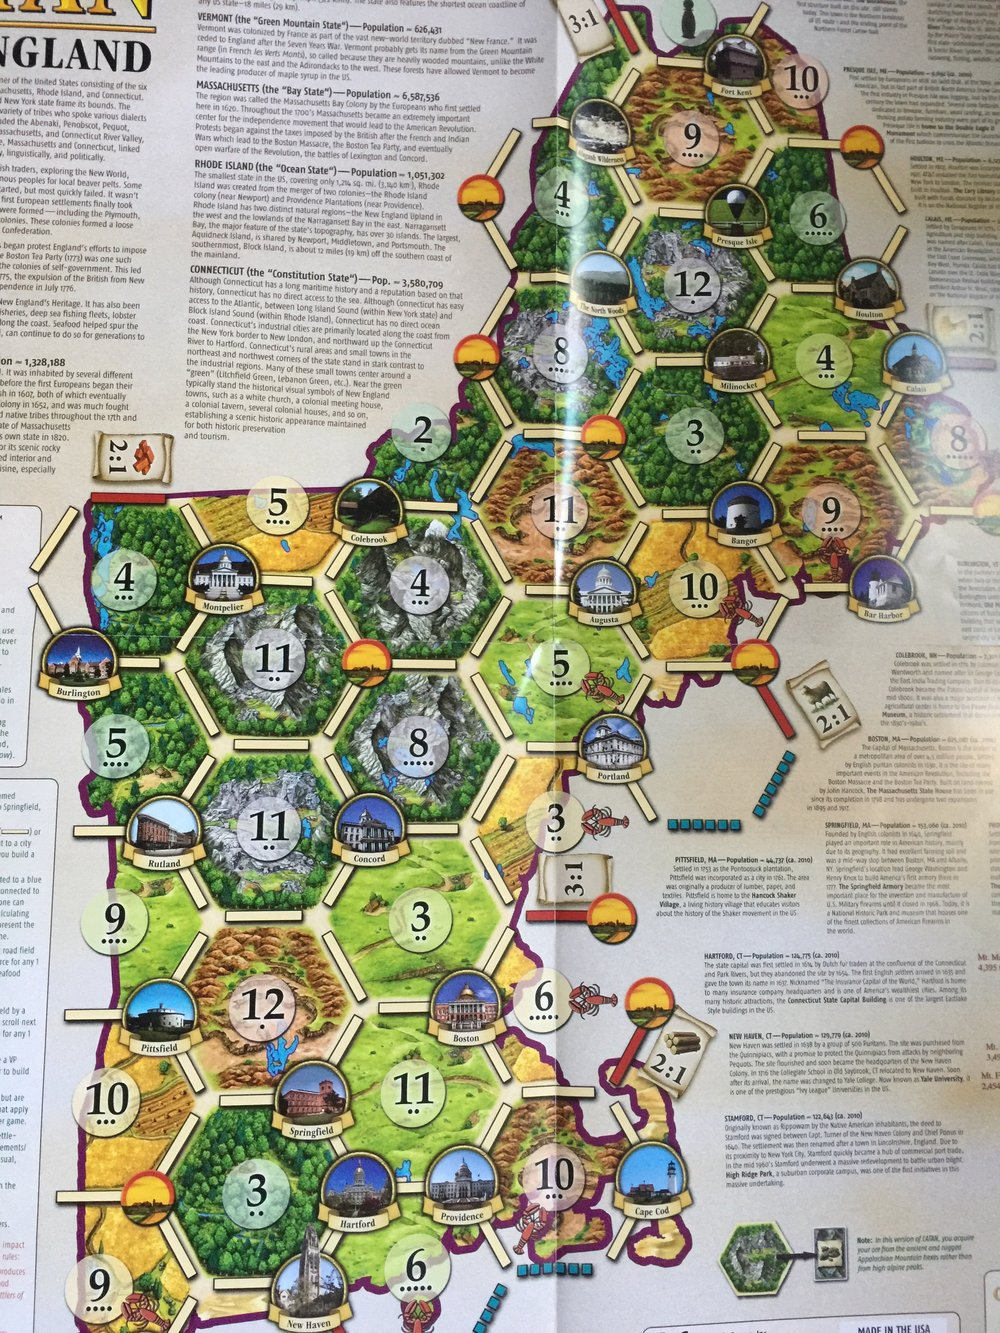 The geography of New England, as a board for Settlers of Catan.